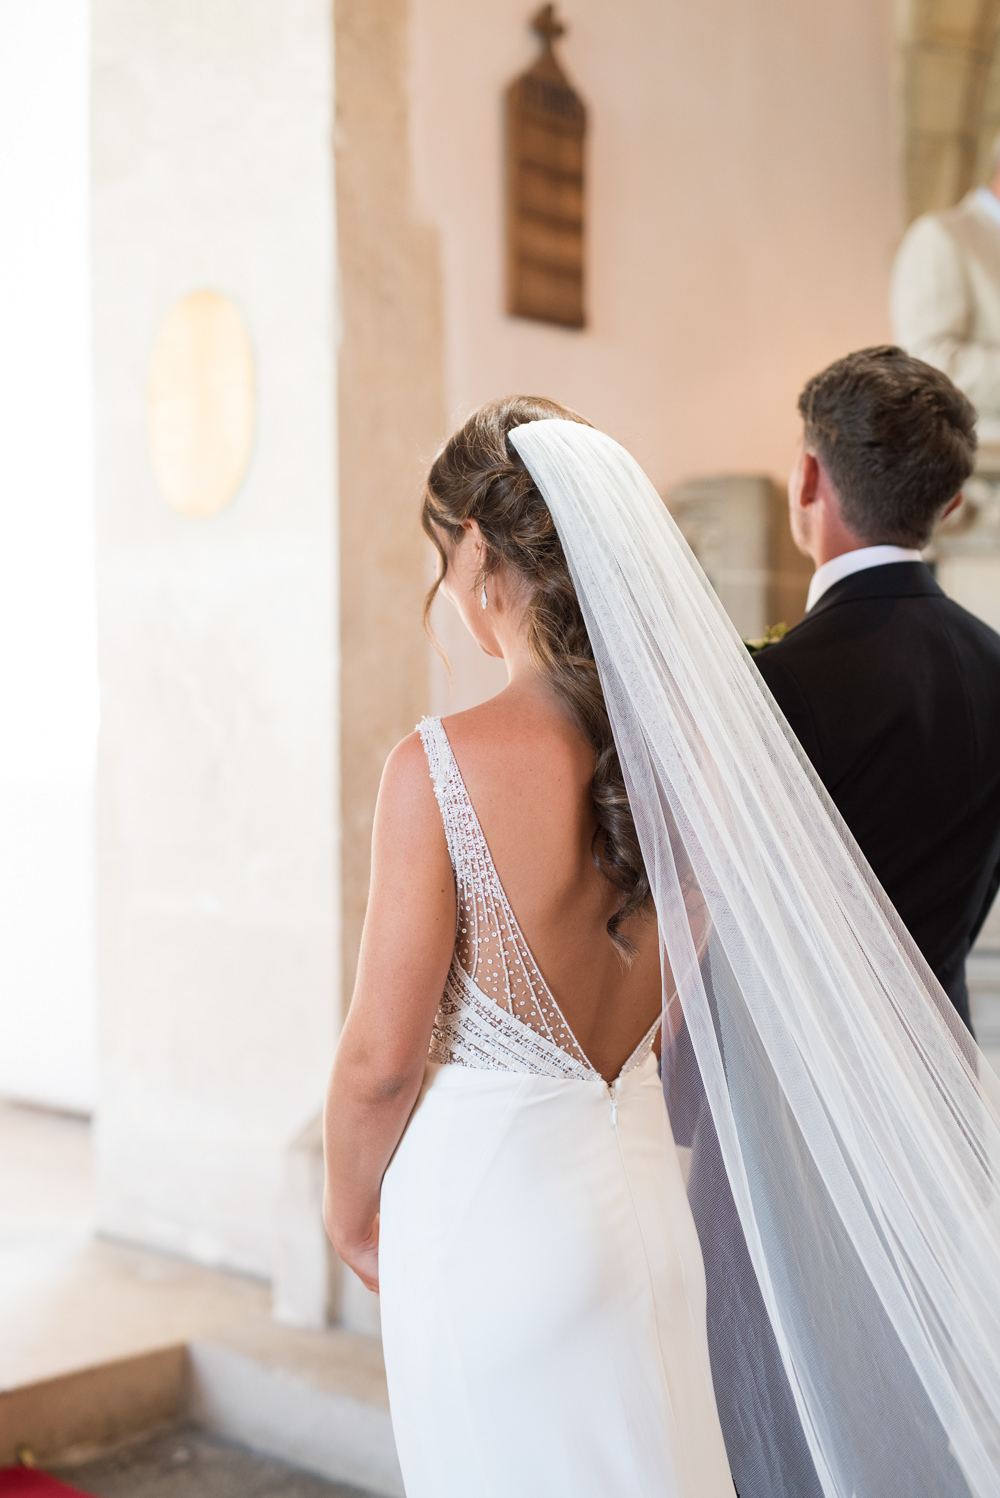 Bride Bridal Gown Dress Sequin Embellished Low V Back Cathedral Veil Elegant Chic Modern Wedding Kayleigh Pope Photography